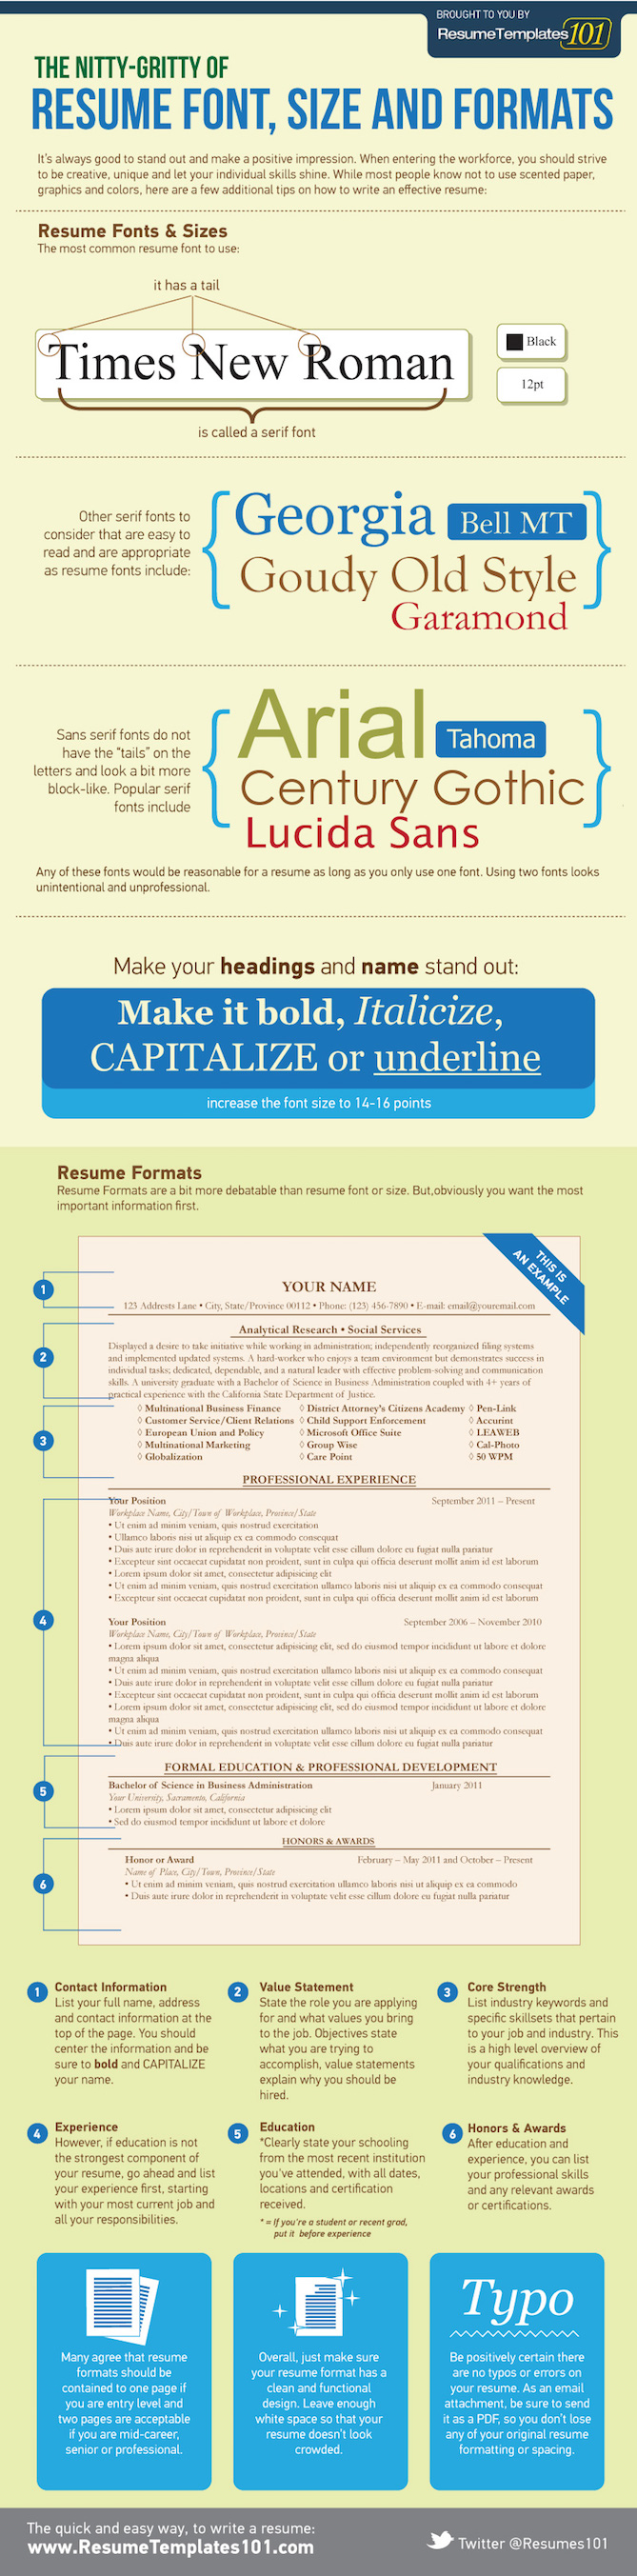 Resume Format Tips You Need to Know in 2018 Sample Formats Included